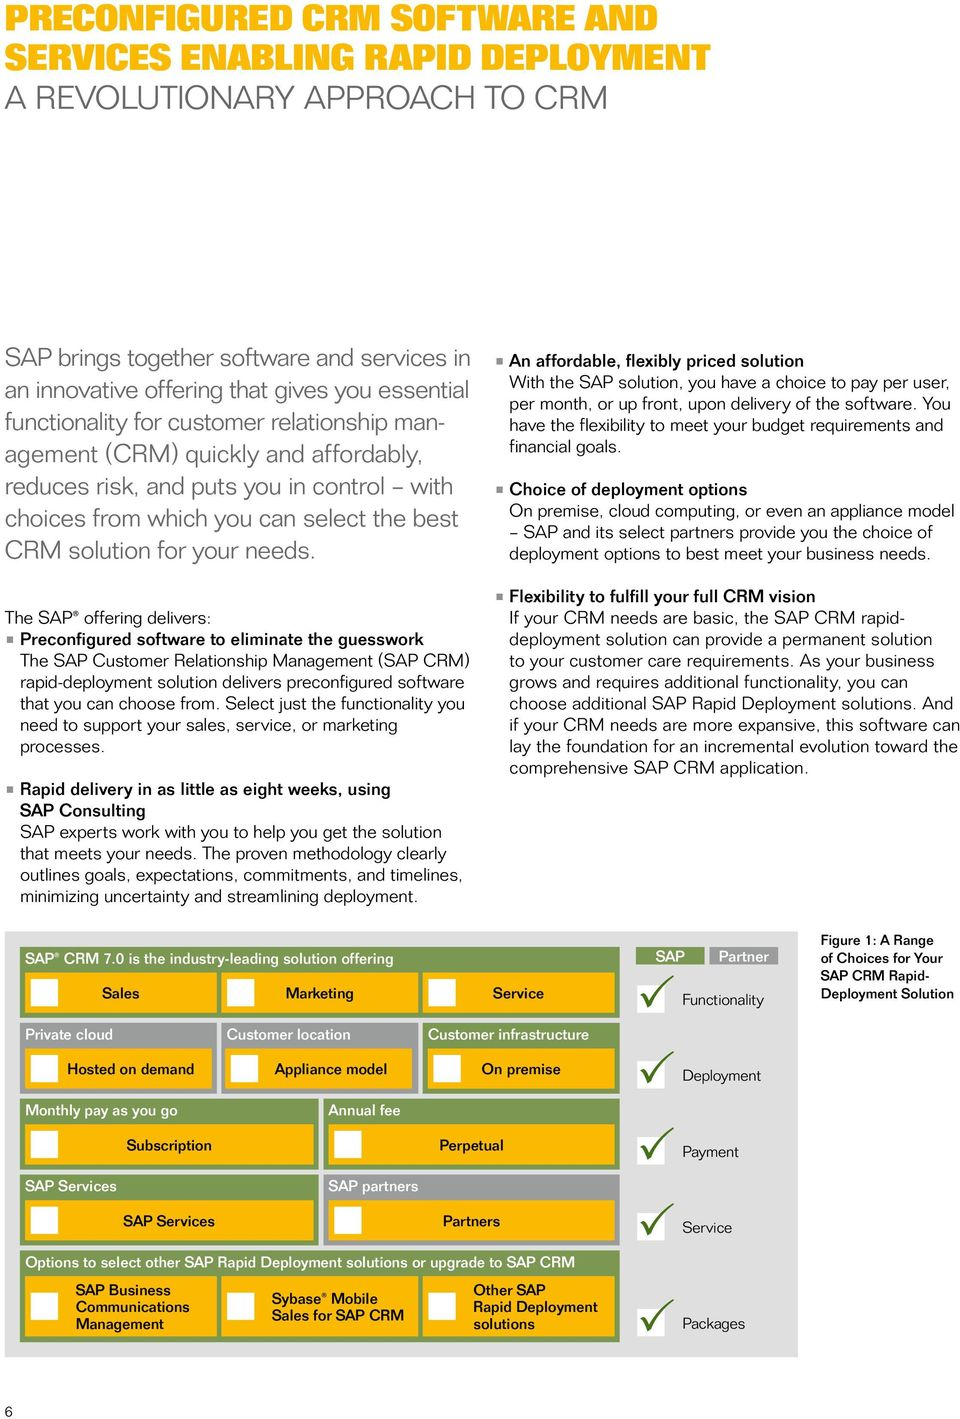 The SAP offering delivers: Preconfigured software to eliminate the guesswork The SAP Customer Relationship Management (SAP CRM) rapid-deployment solution delivers preconfigured software that you can